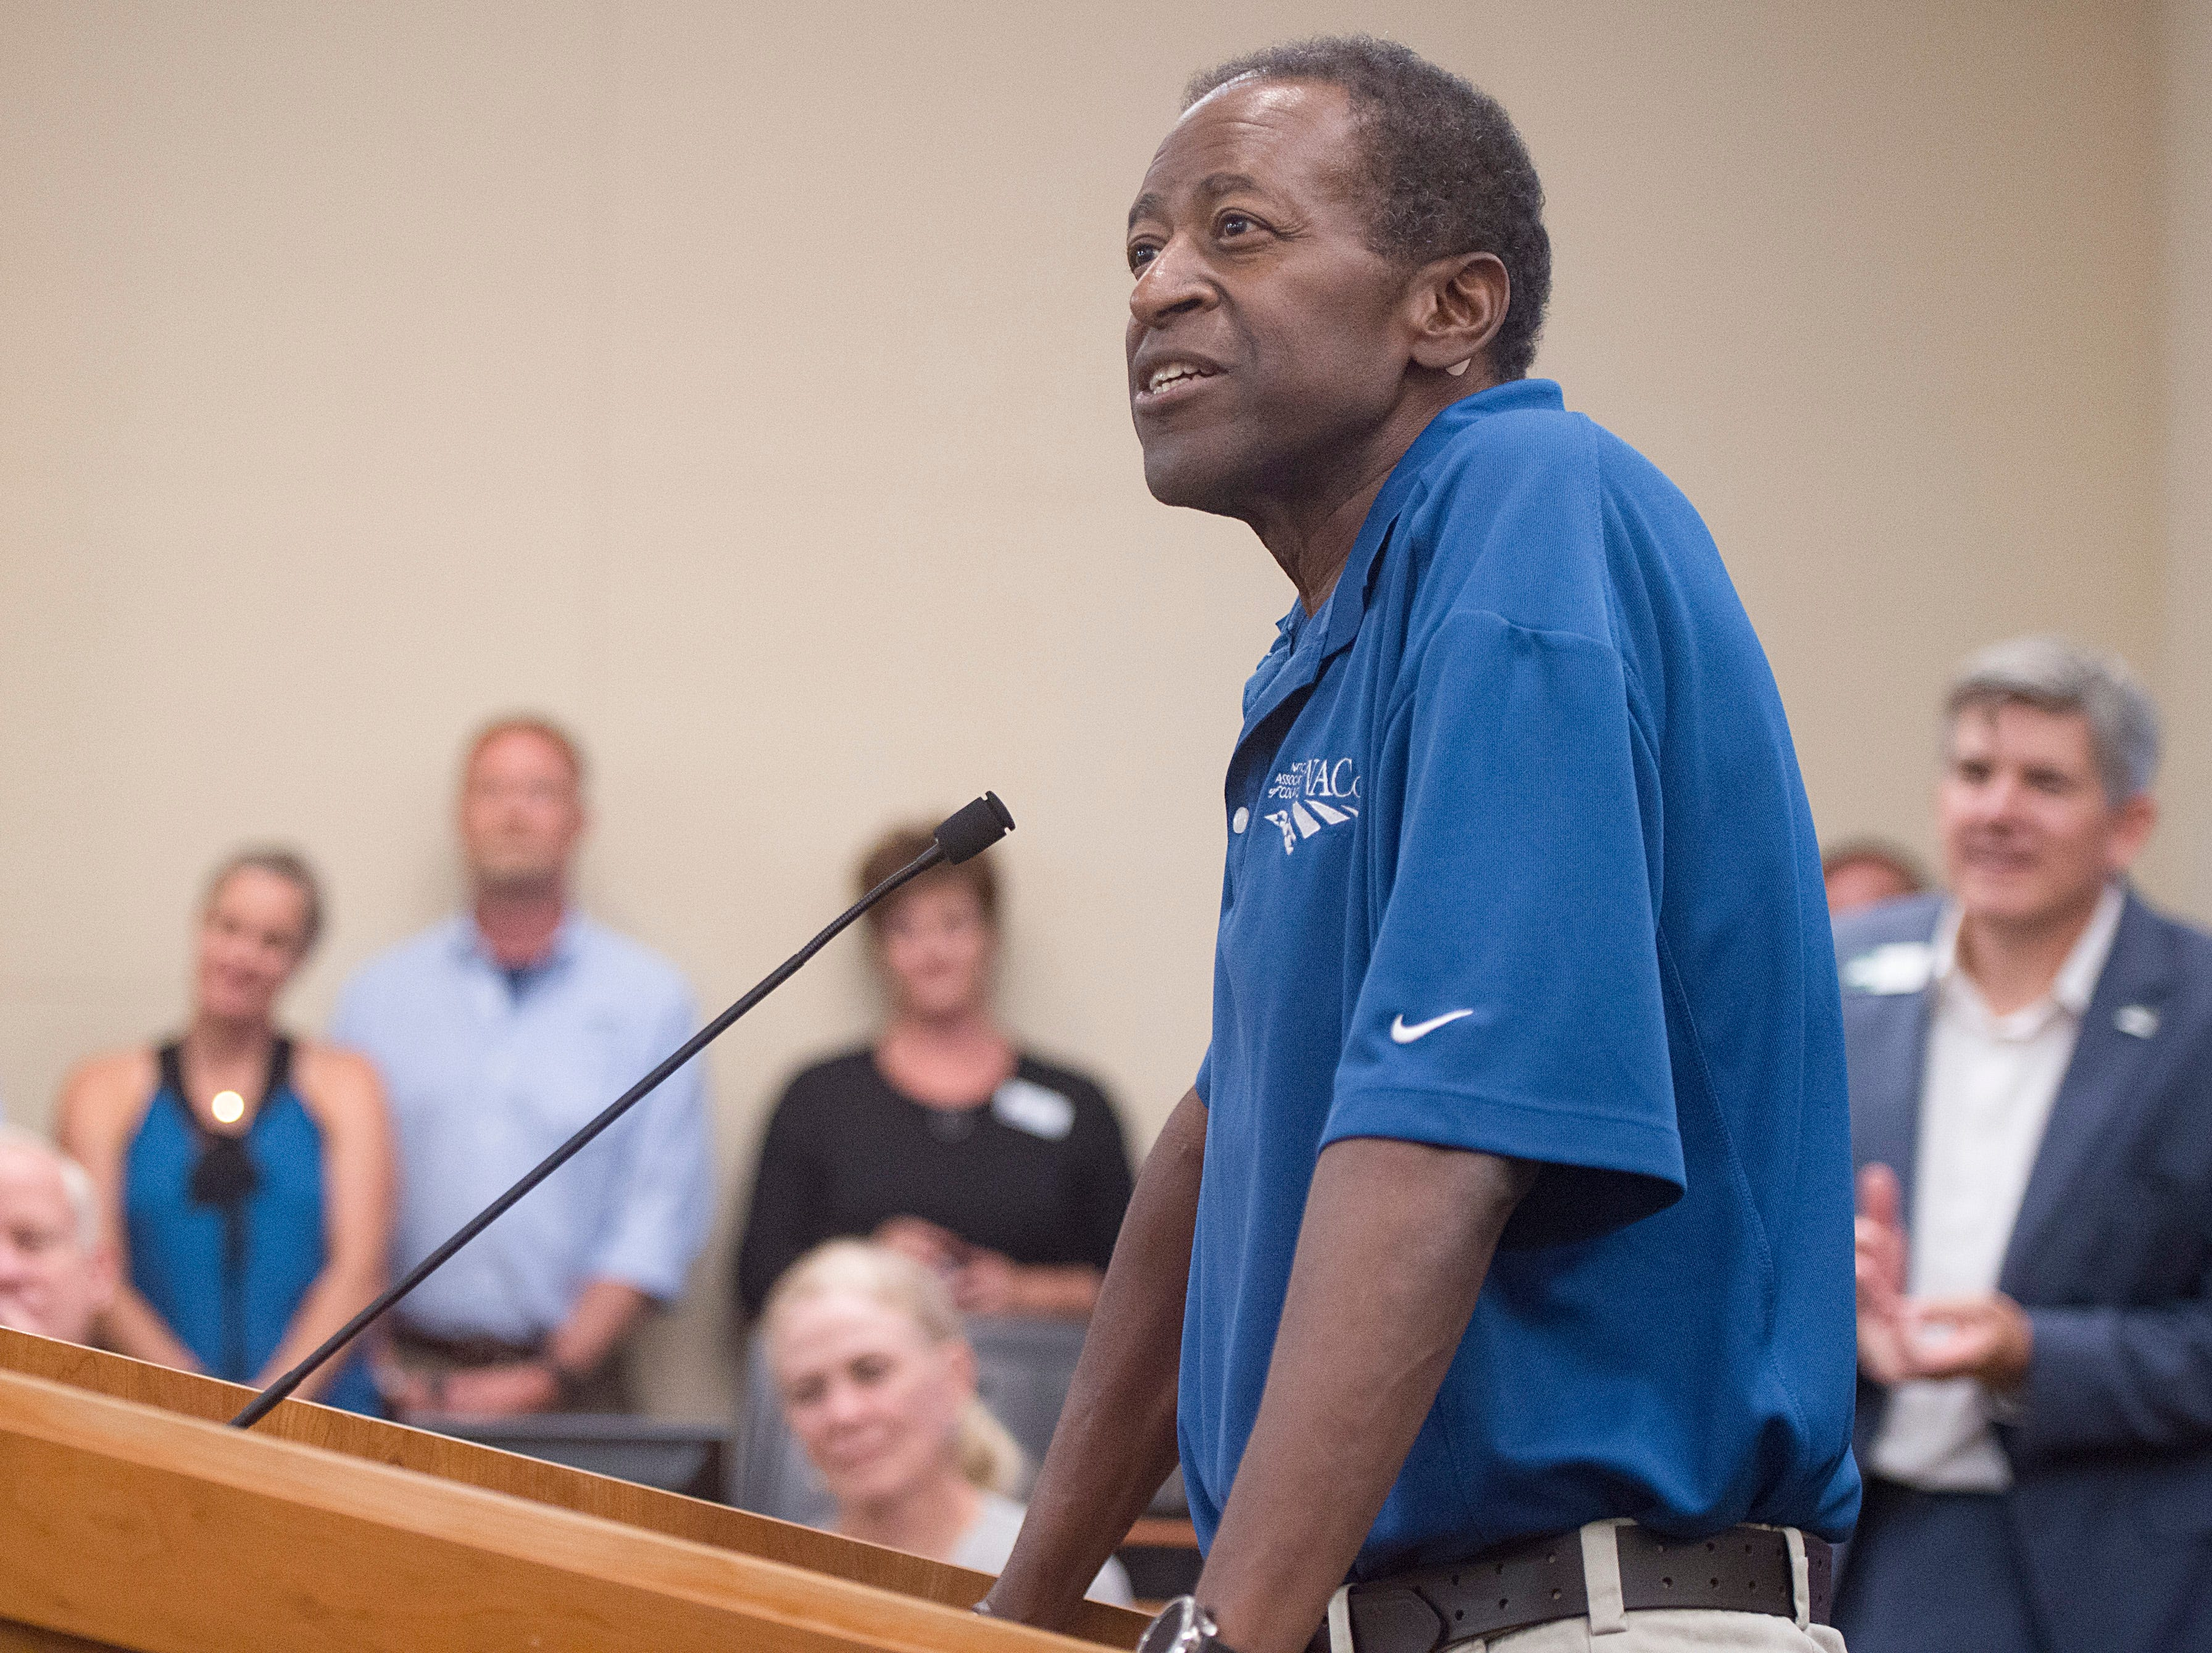 County Commissioner Lew Gaiter III speaks to friends and colleagues at a gathering to celebrate his life at the Larimer County Courthouse on Wednesday, August 15, 2018. Gaiter III was given six to 12 weeks to live after the cancer he has had for nearly a decade began to take its toll earlier this month.